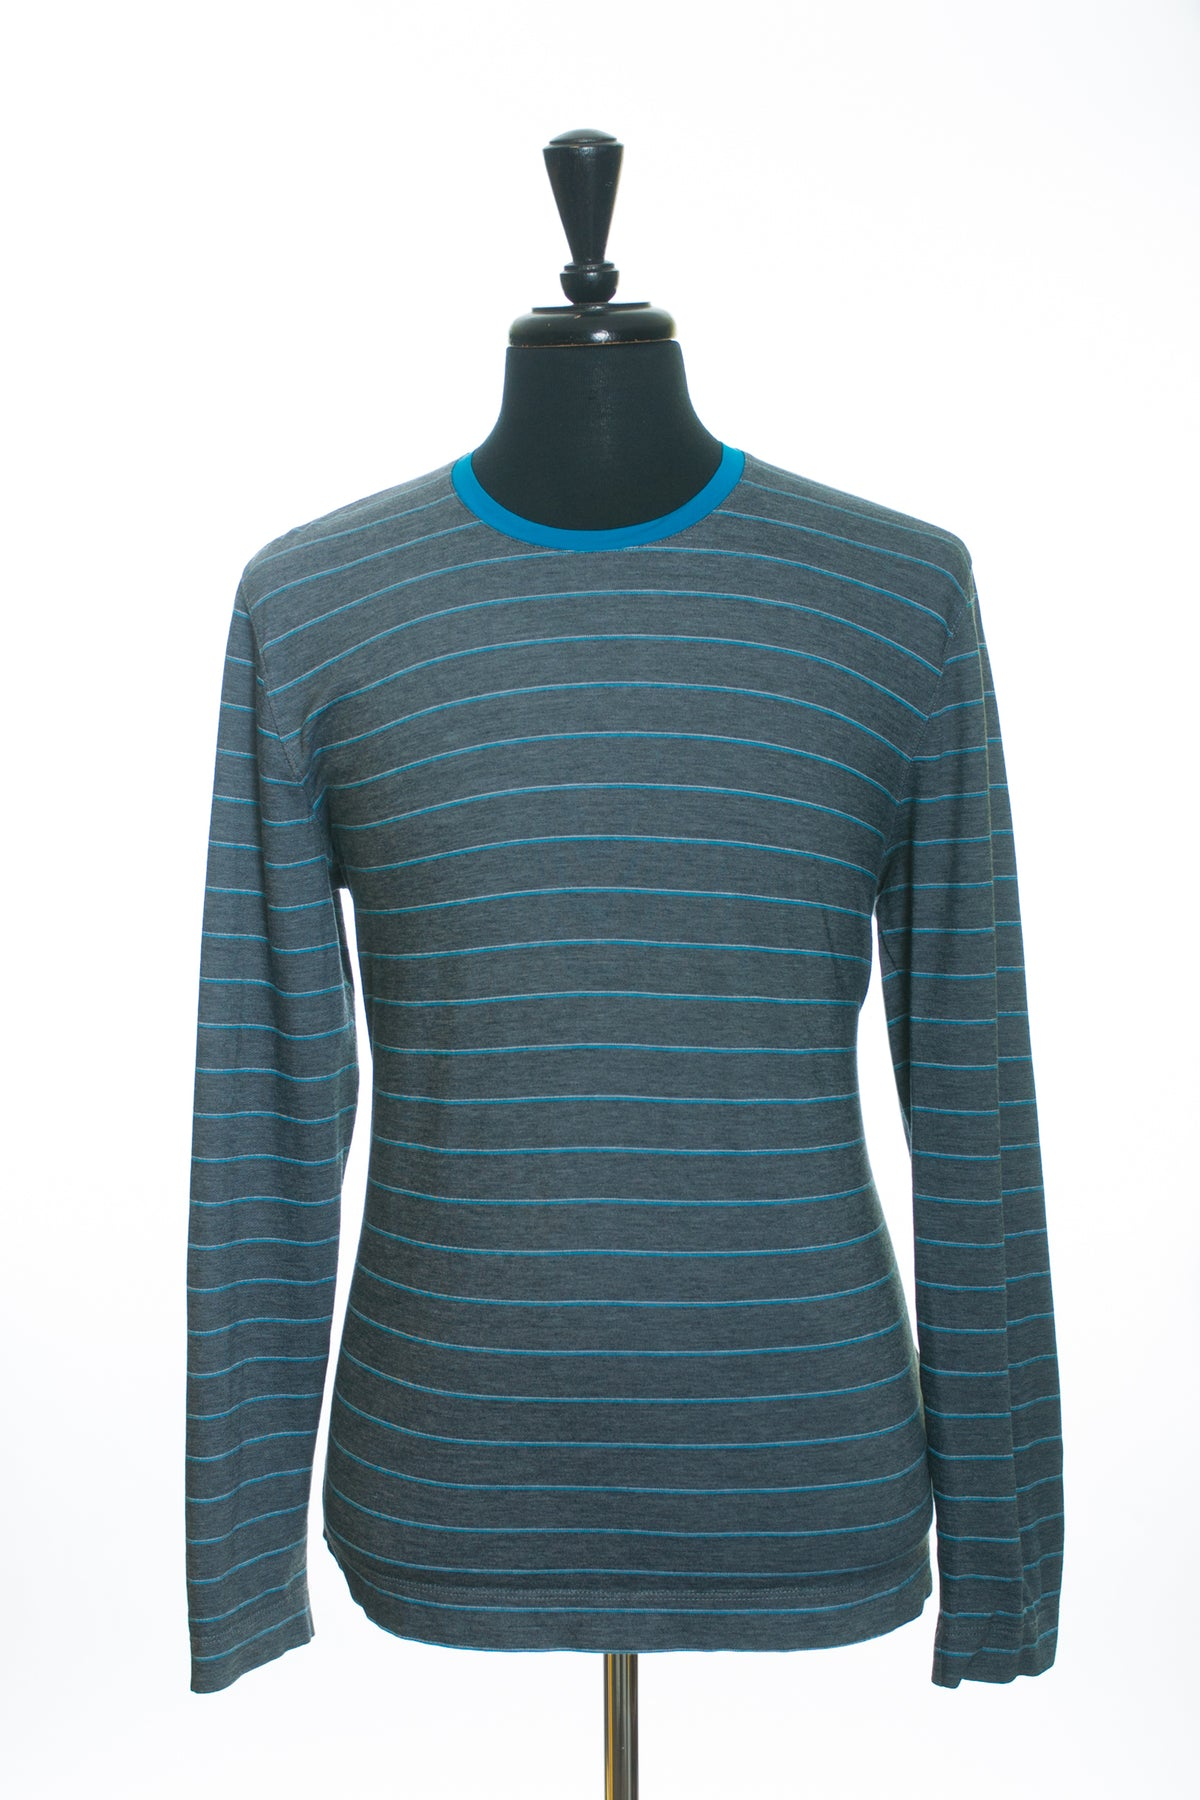 Hugo Boss Grey Striped Pisa21 Long Sleeve T-Shirt